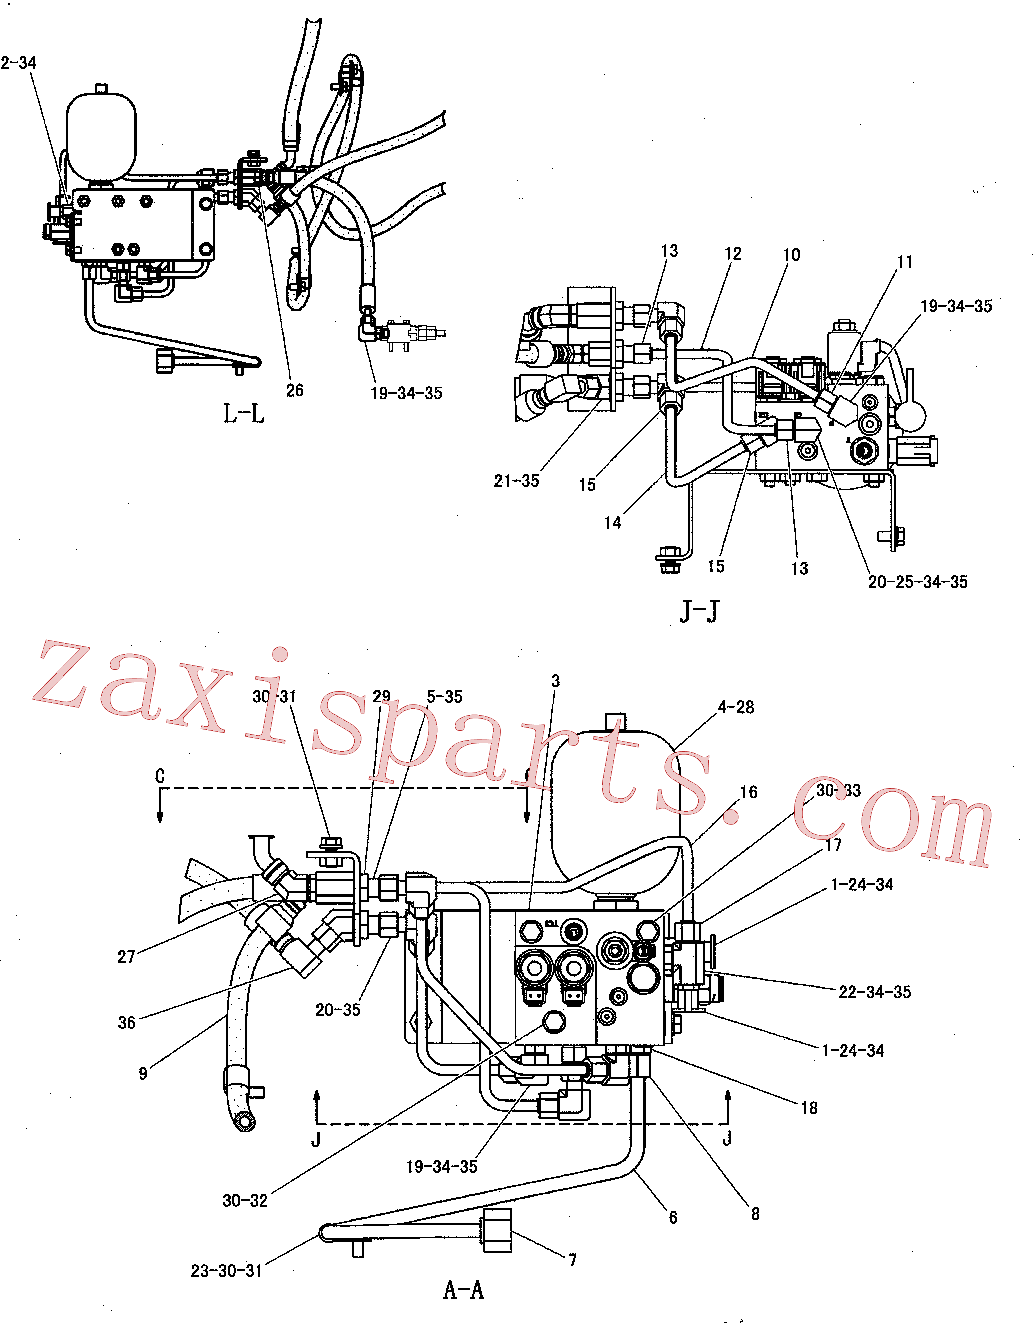 CAT 8T-9358 for 988H Wheel Loader(WTL) power train 260-8836 Assembly